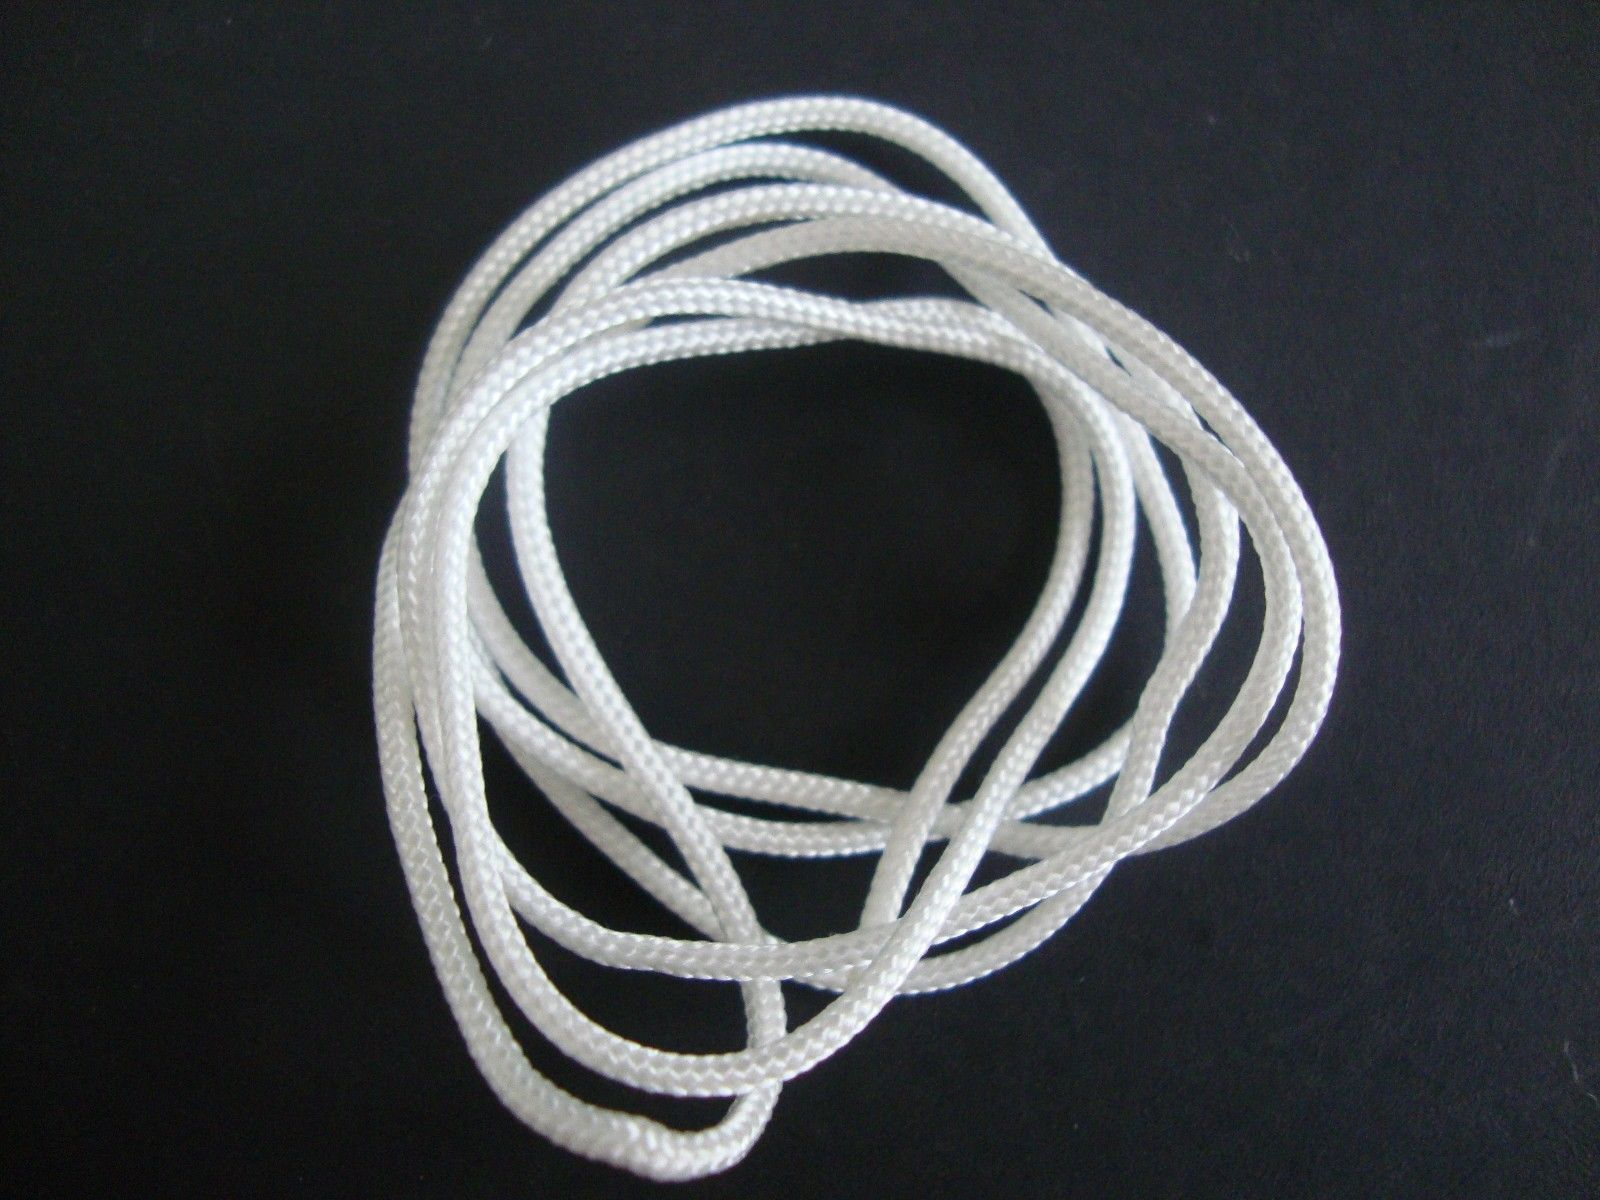 25 YARDS :1.8mm WHITE LIFT CORD for Blinds, Roman Shades and More